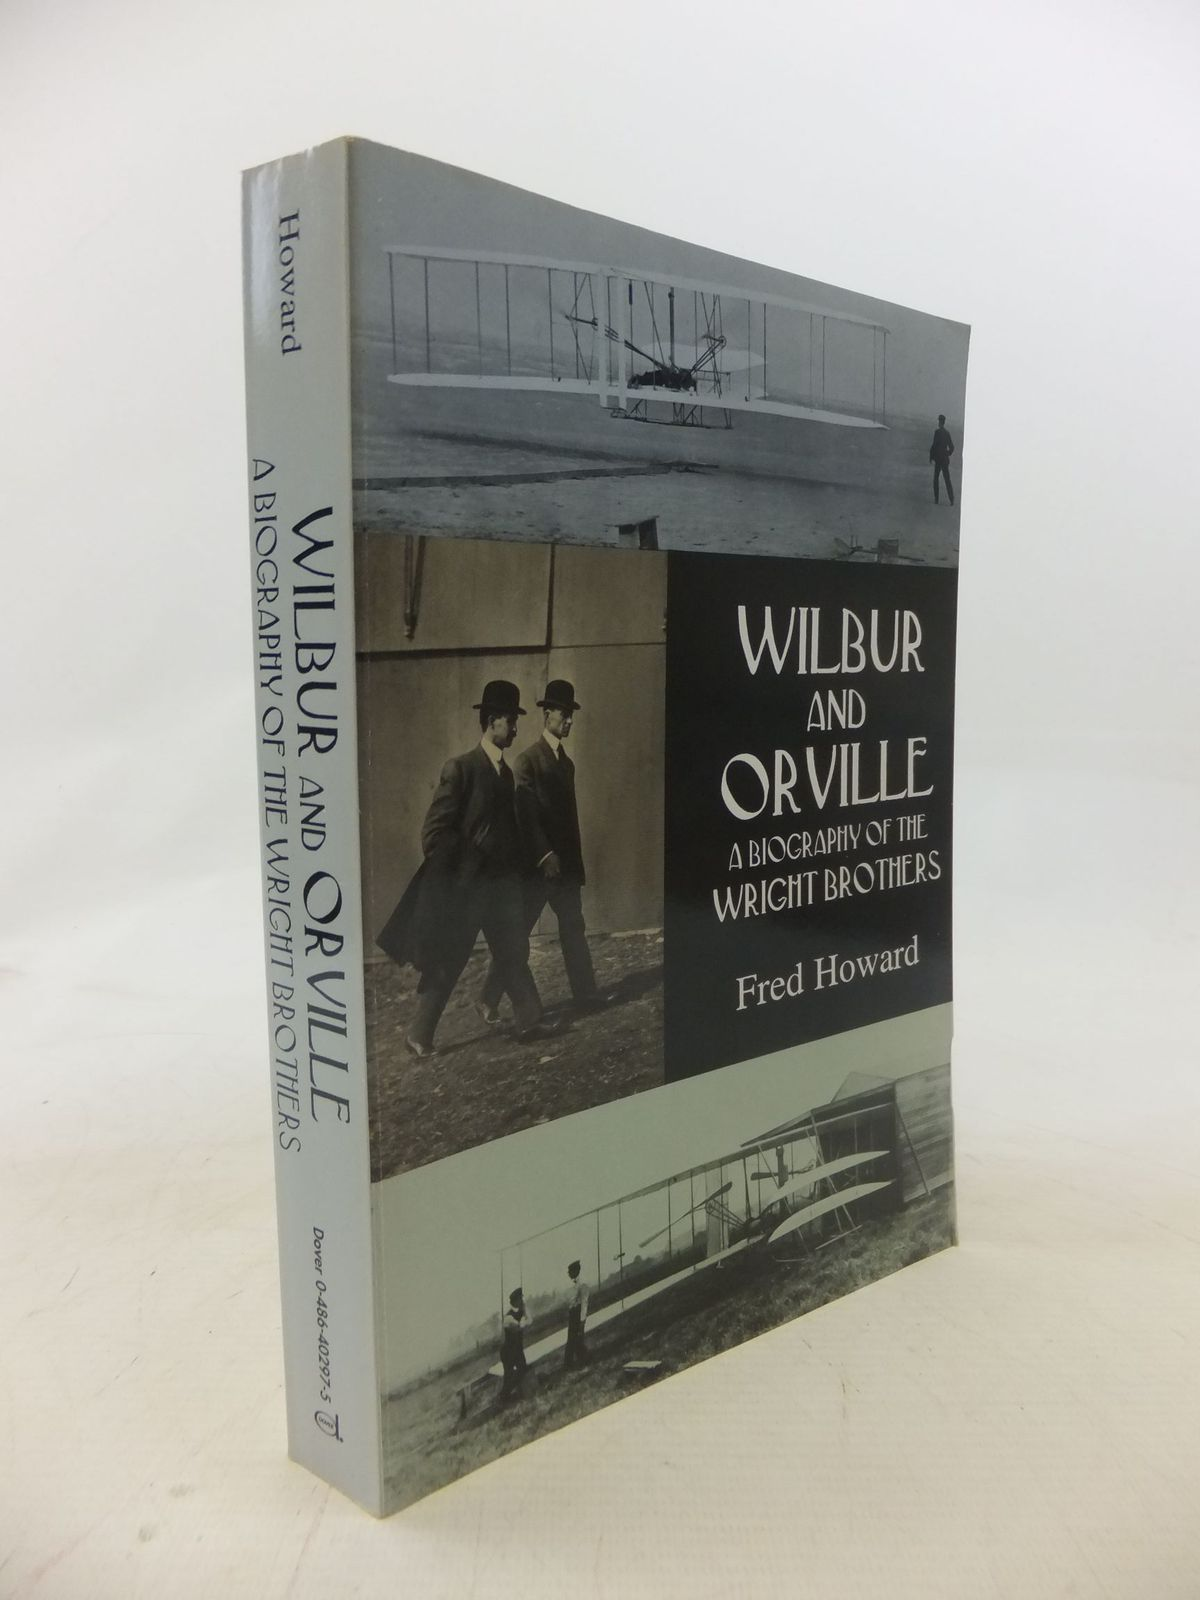 Photo of WILBUR AND ORVILLE A BIOGRAPHY OF THE WRIGHT BROTHERS written by Howard, Fred published by Dover Publications Inc. (STOCK CODE: 1712107)  for sale by Stella & Rose's Books